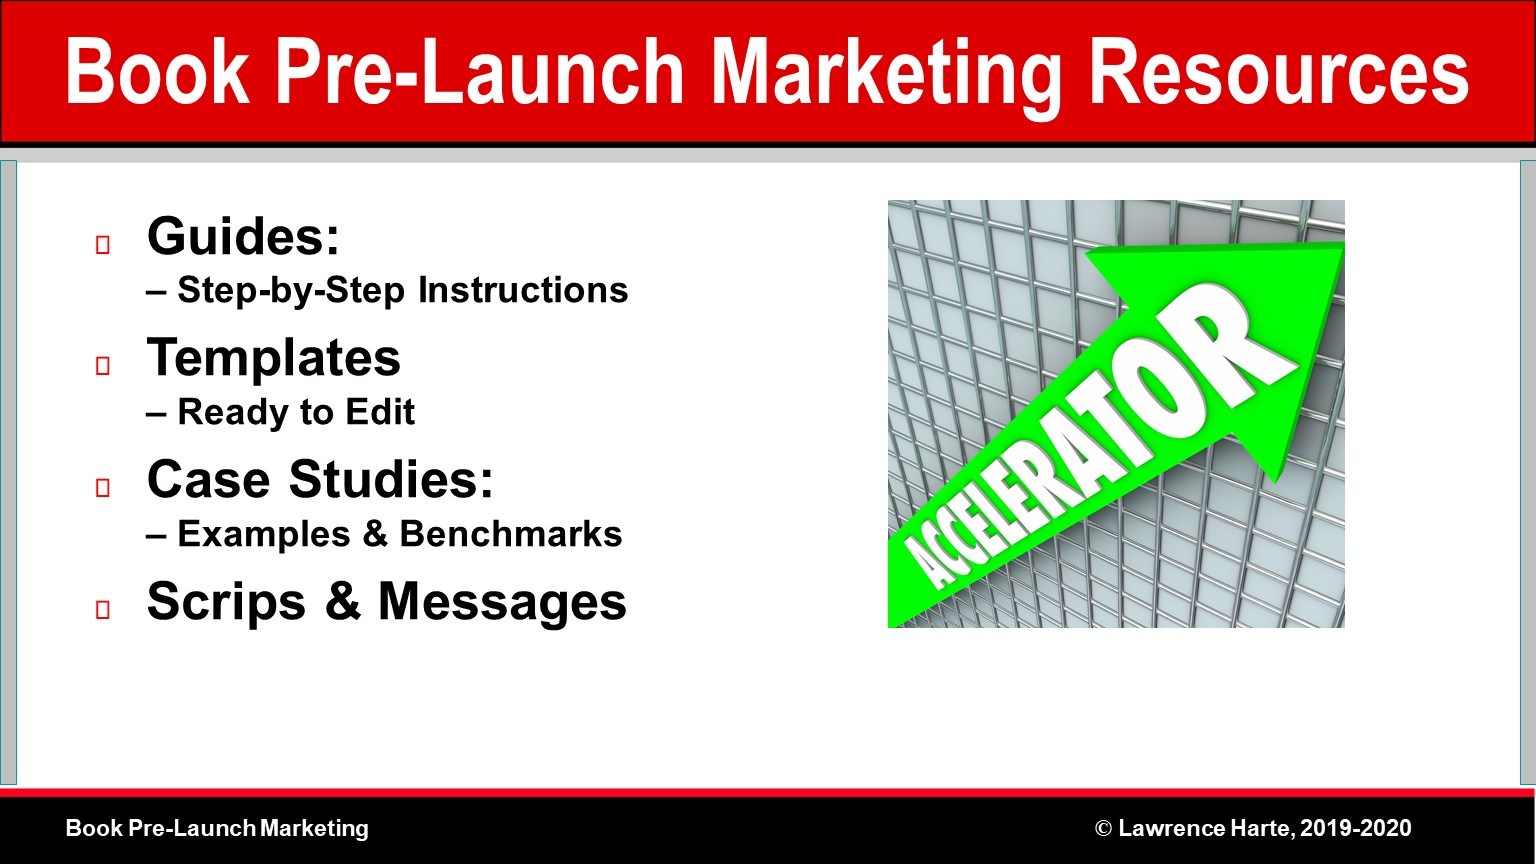 Book Pre-Launch Marketing Resources